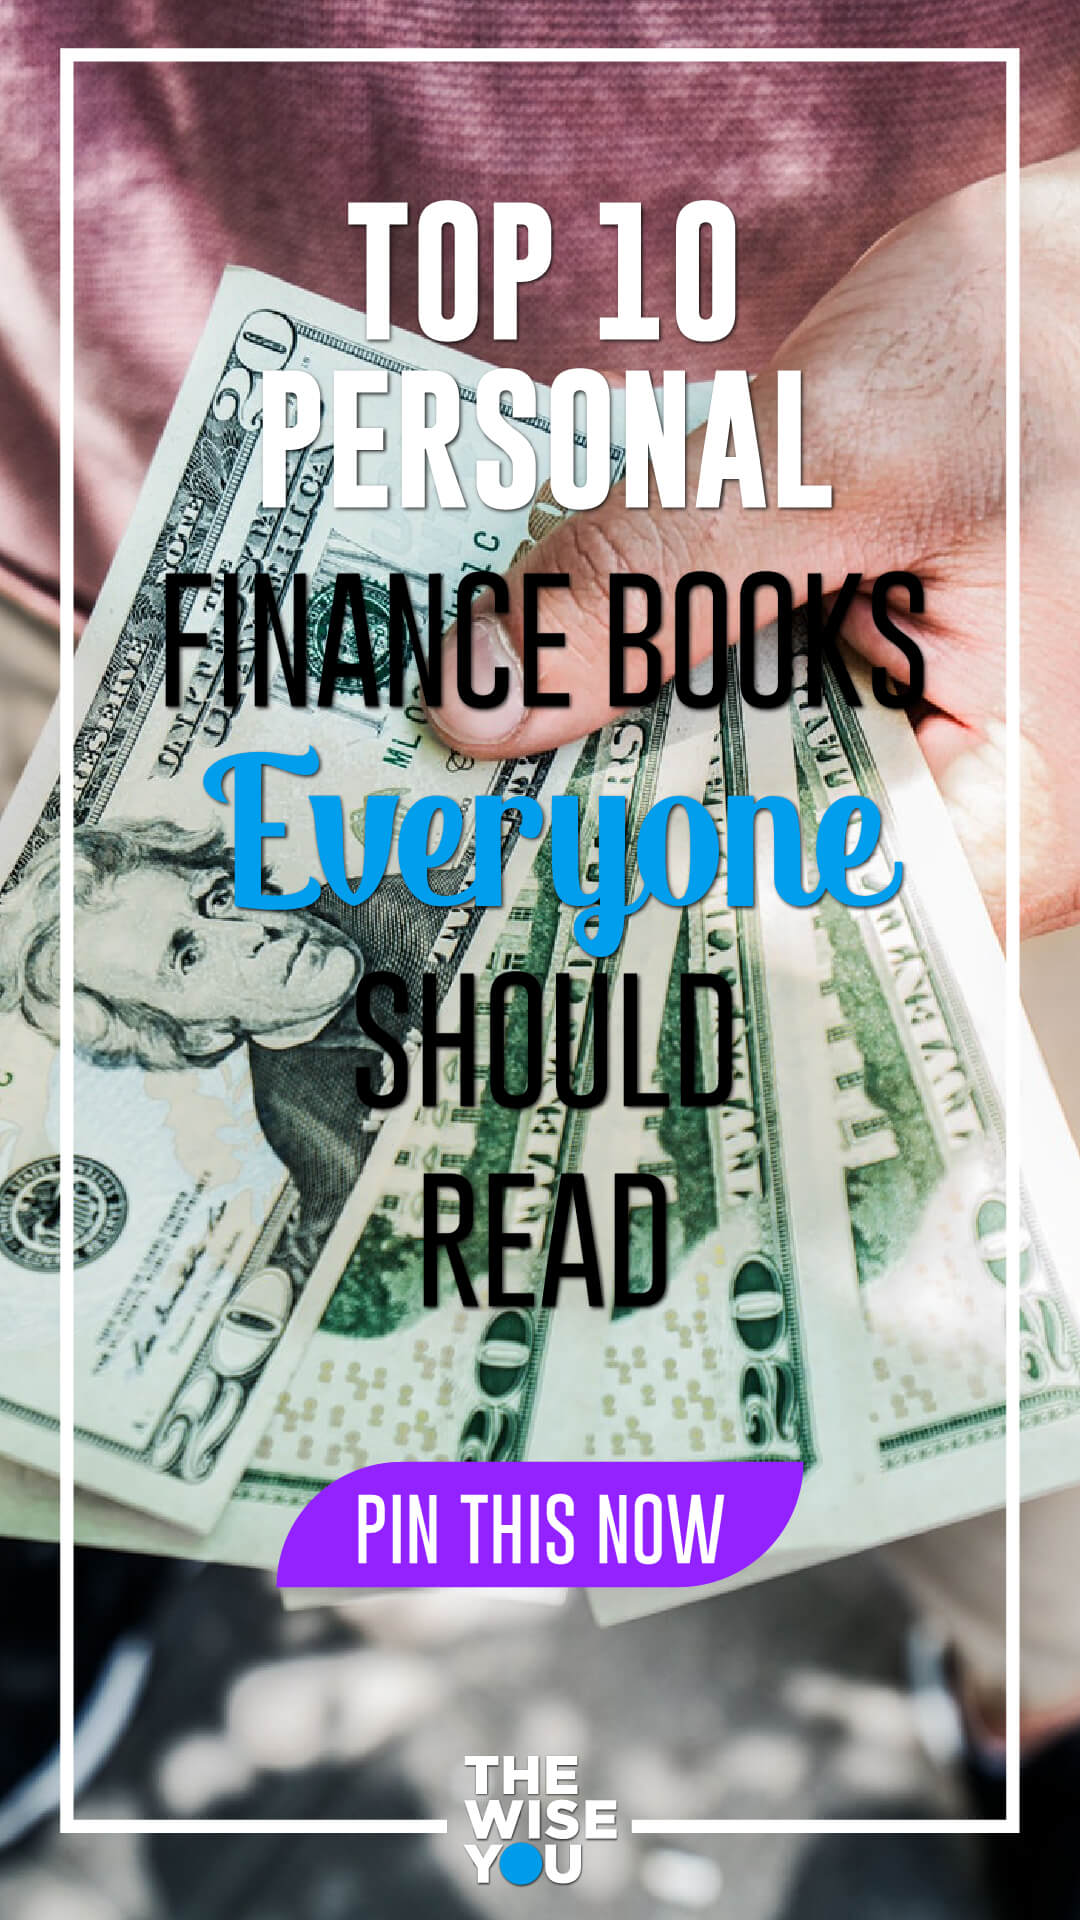 Top 10 Personal Finance Books Everyone Should Read